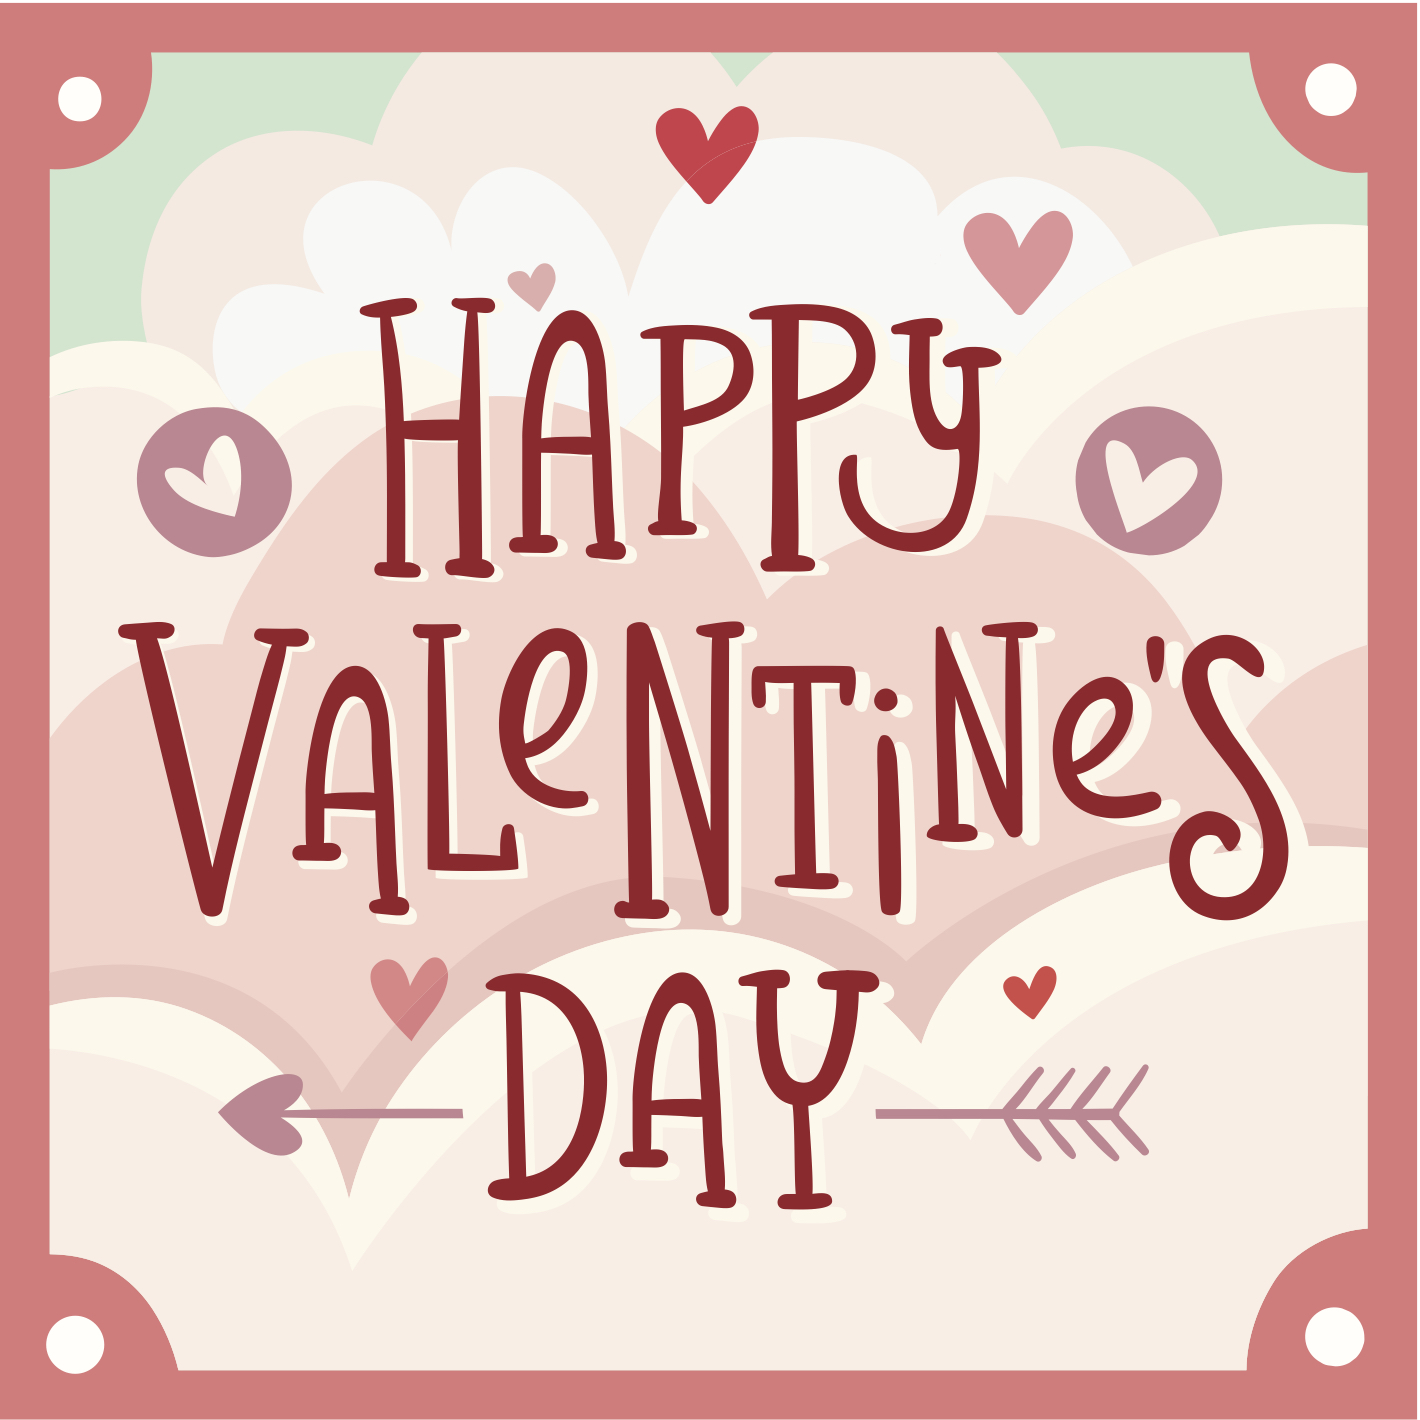 Valentine's Day eCard with text and hearts and arrows